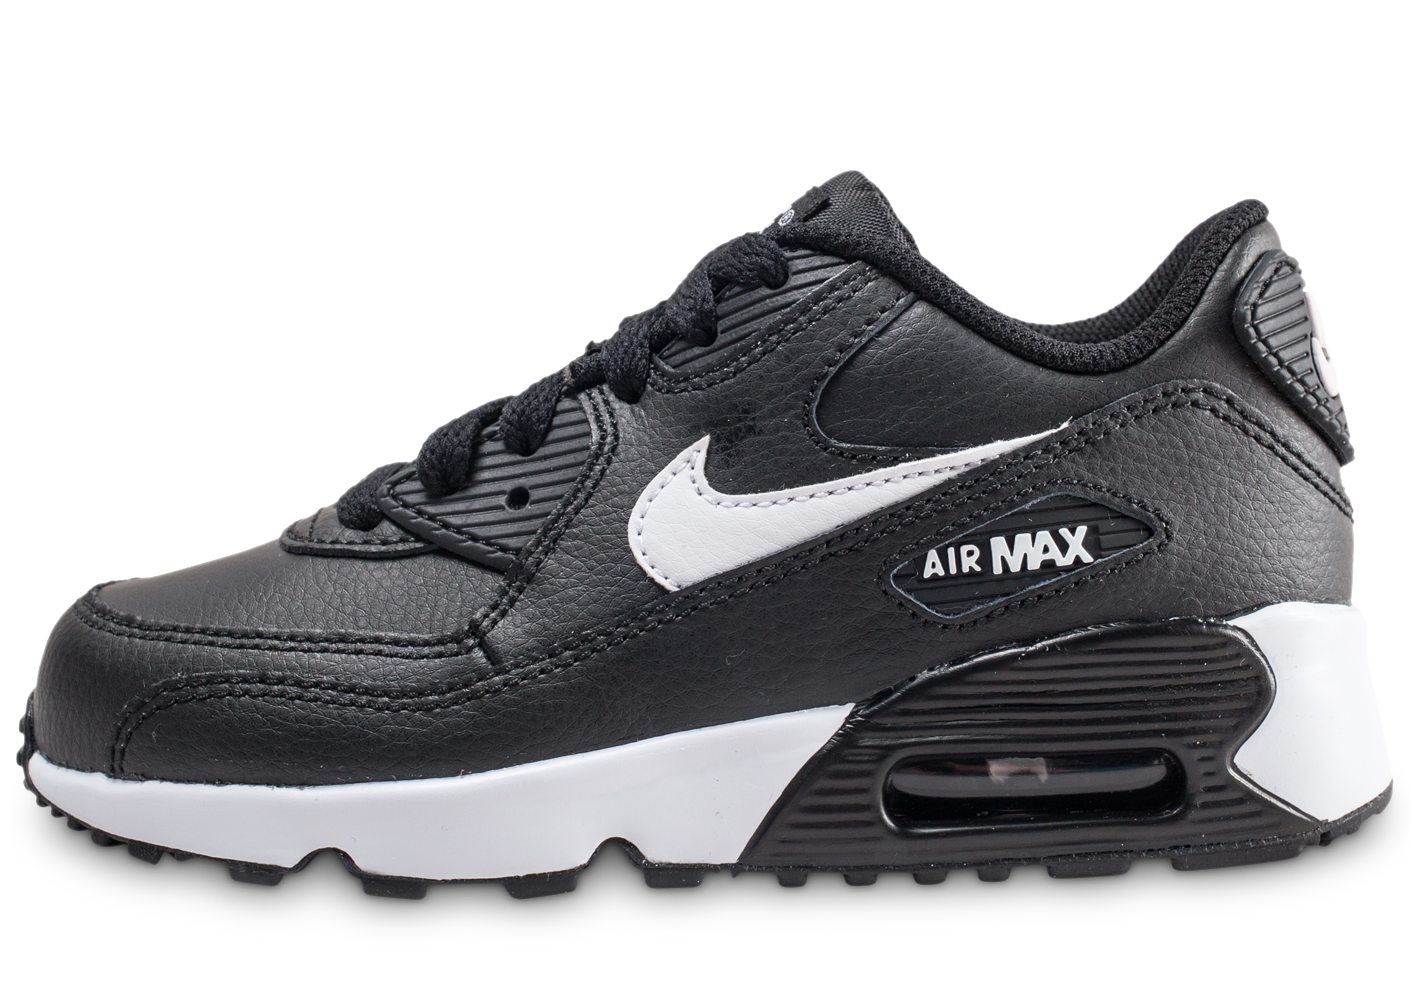 super popular 0ea17 22e54 Nike air max 90 leather noire et blanche enfant.